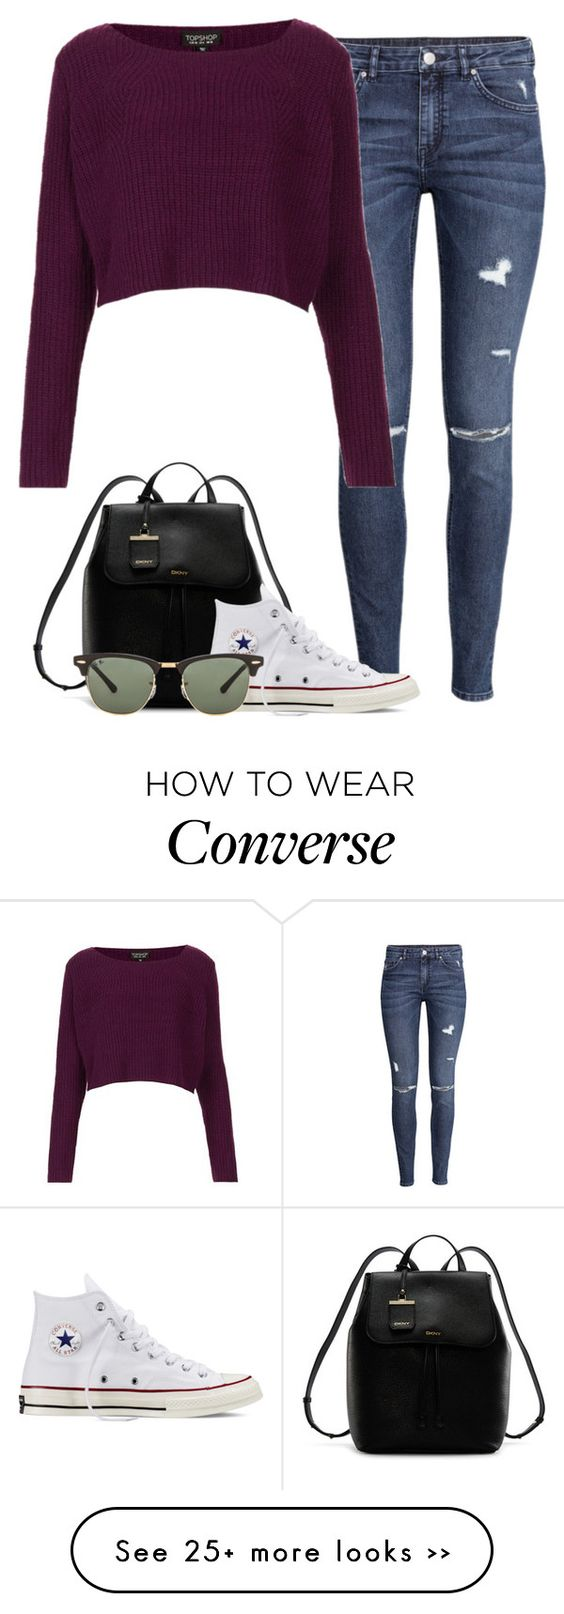 10 Gorgeous Ways to Style a Sweater